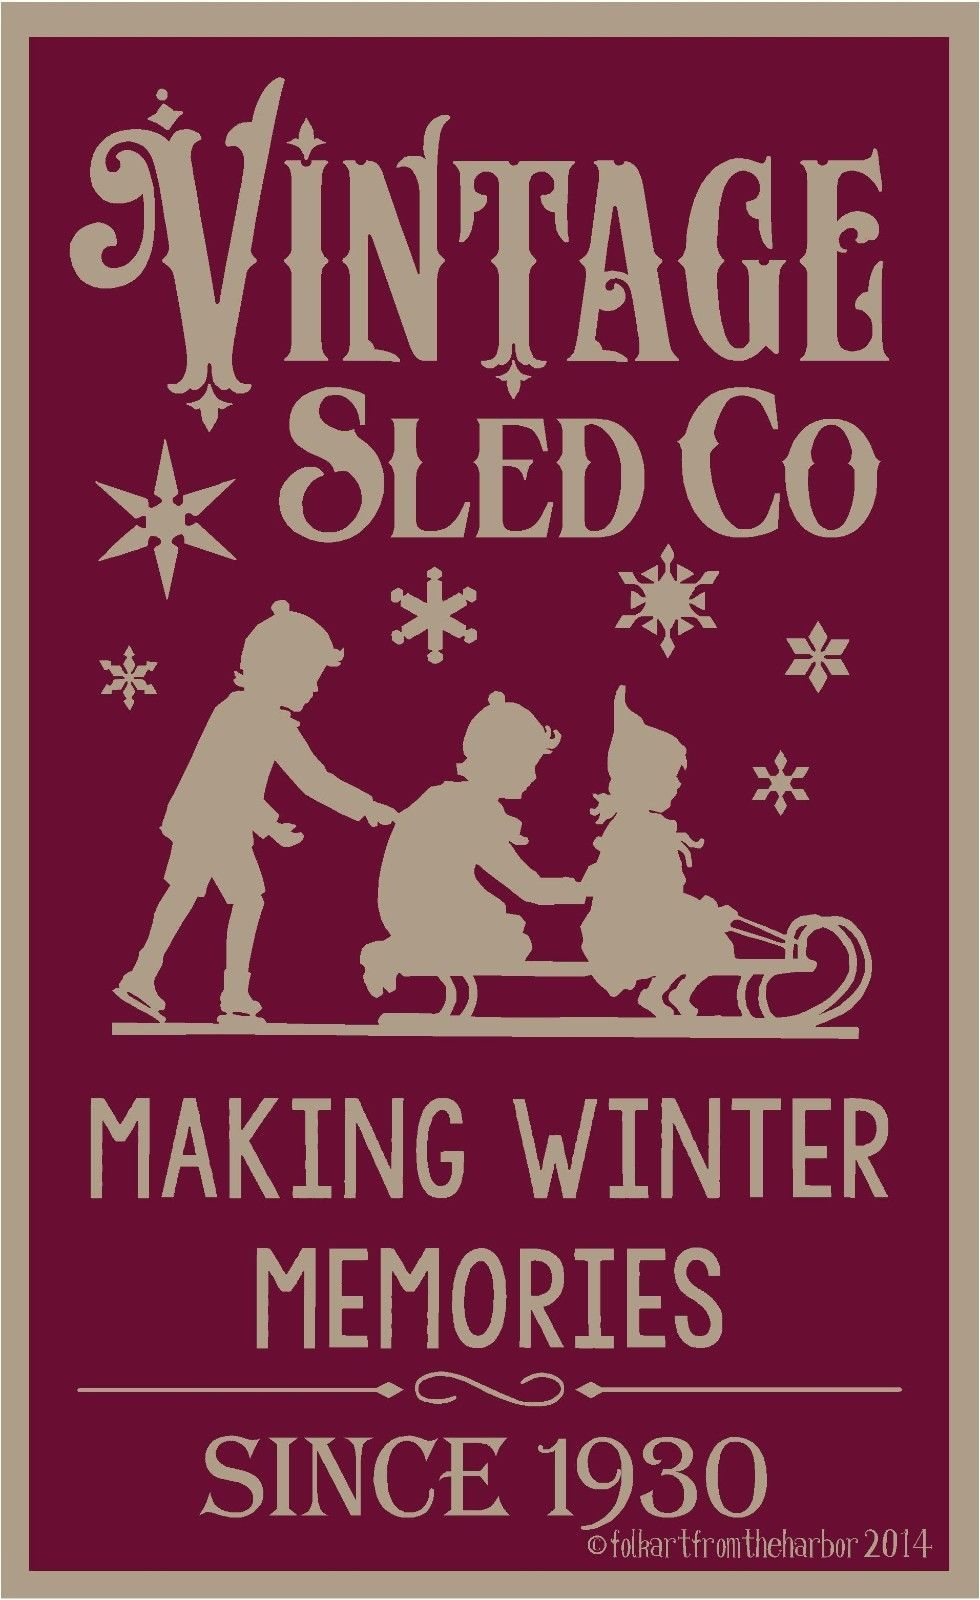 Primitive Stencil Vintage Sled Co 12x20 007 Mil Free Shipping Ebay Christmas Stencils Vintage Sled Christmas Graphics